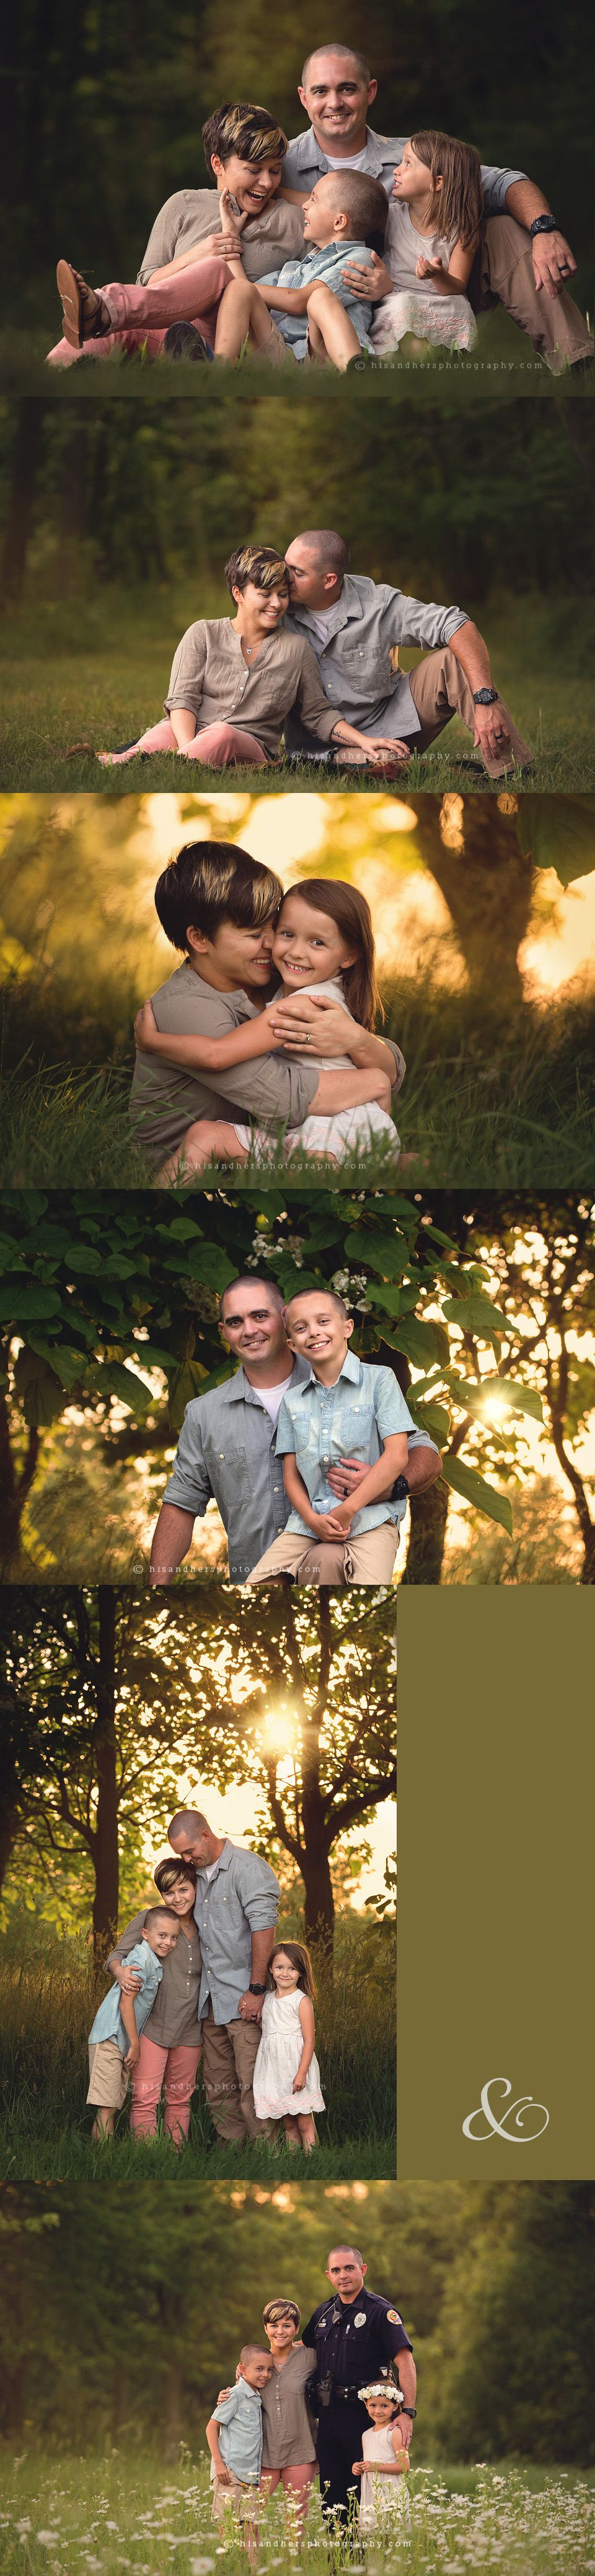 Family | Zac, Nichole + kids